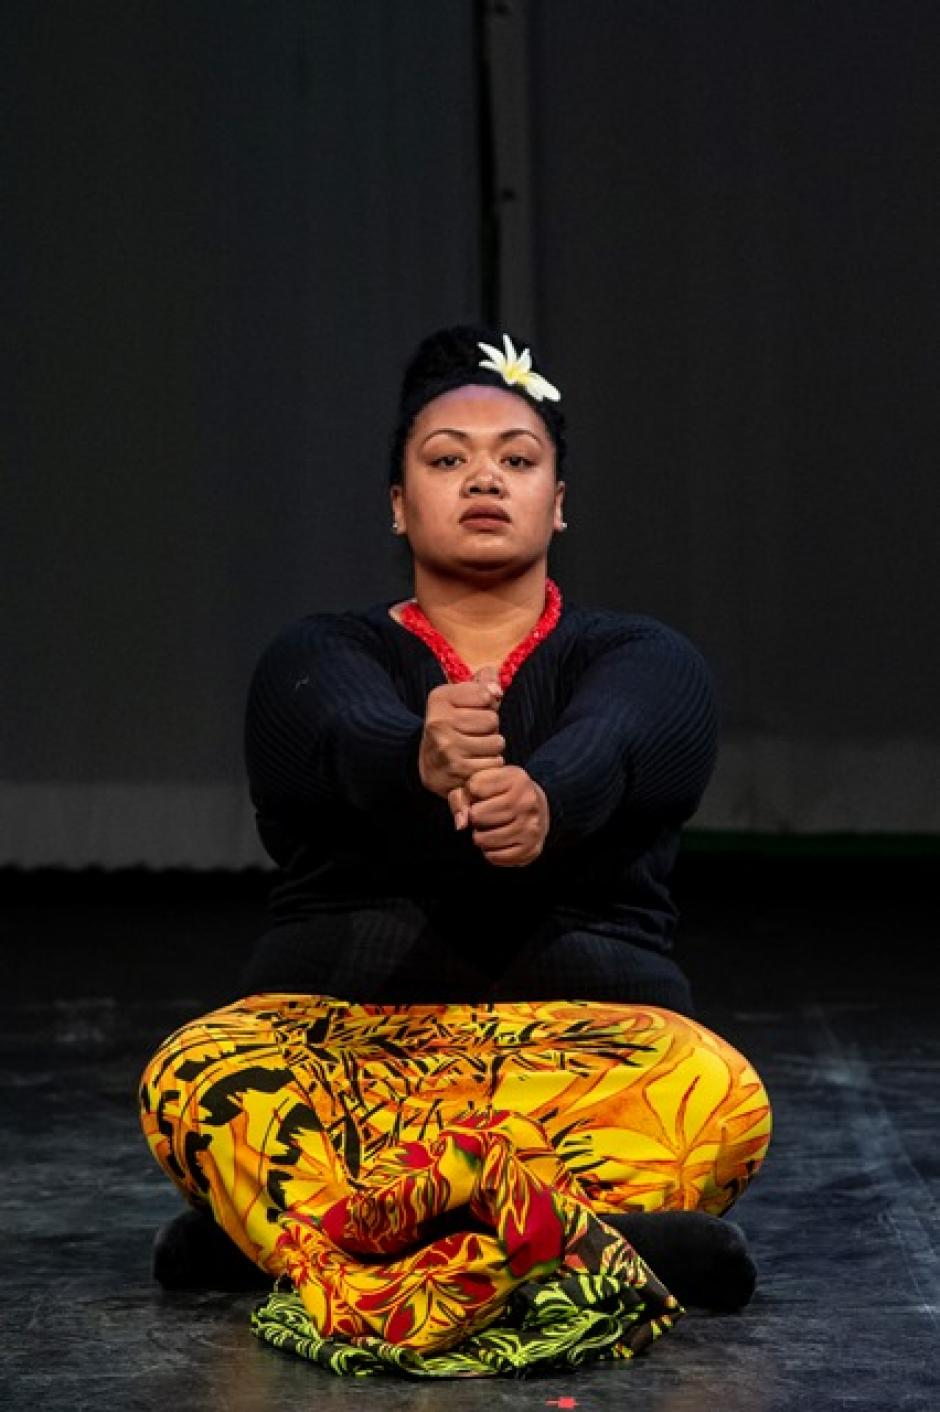 An indigenous woman sits on the ground with her hands in stacked fists held in front of her.